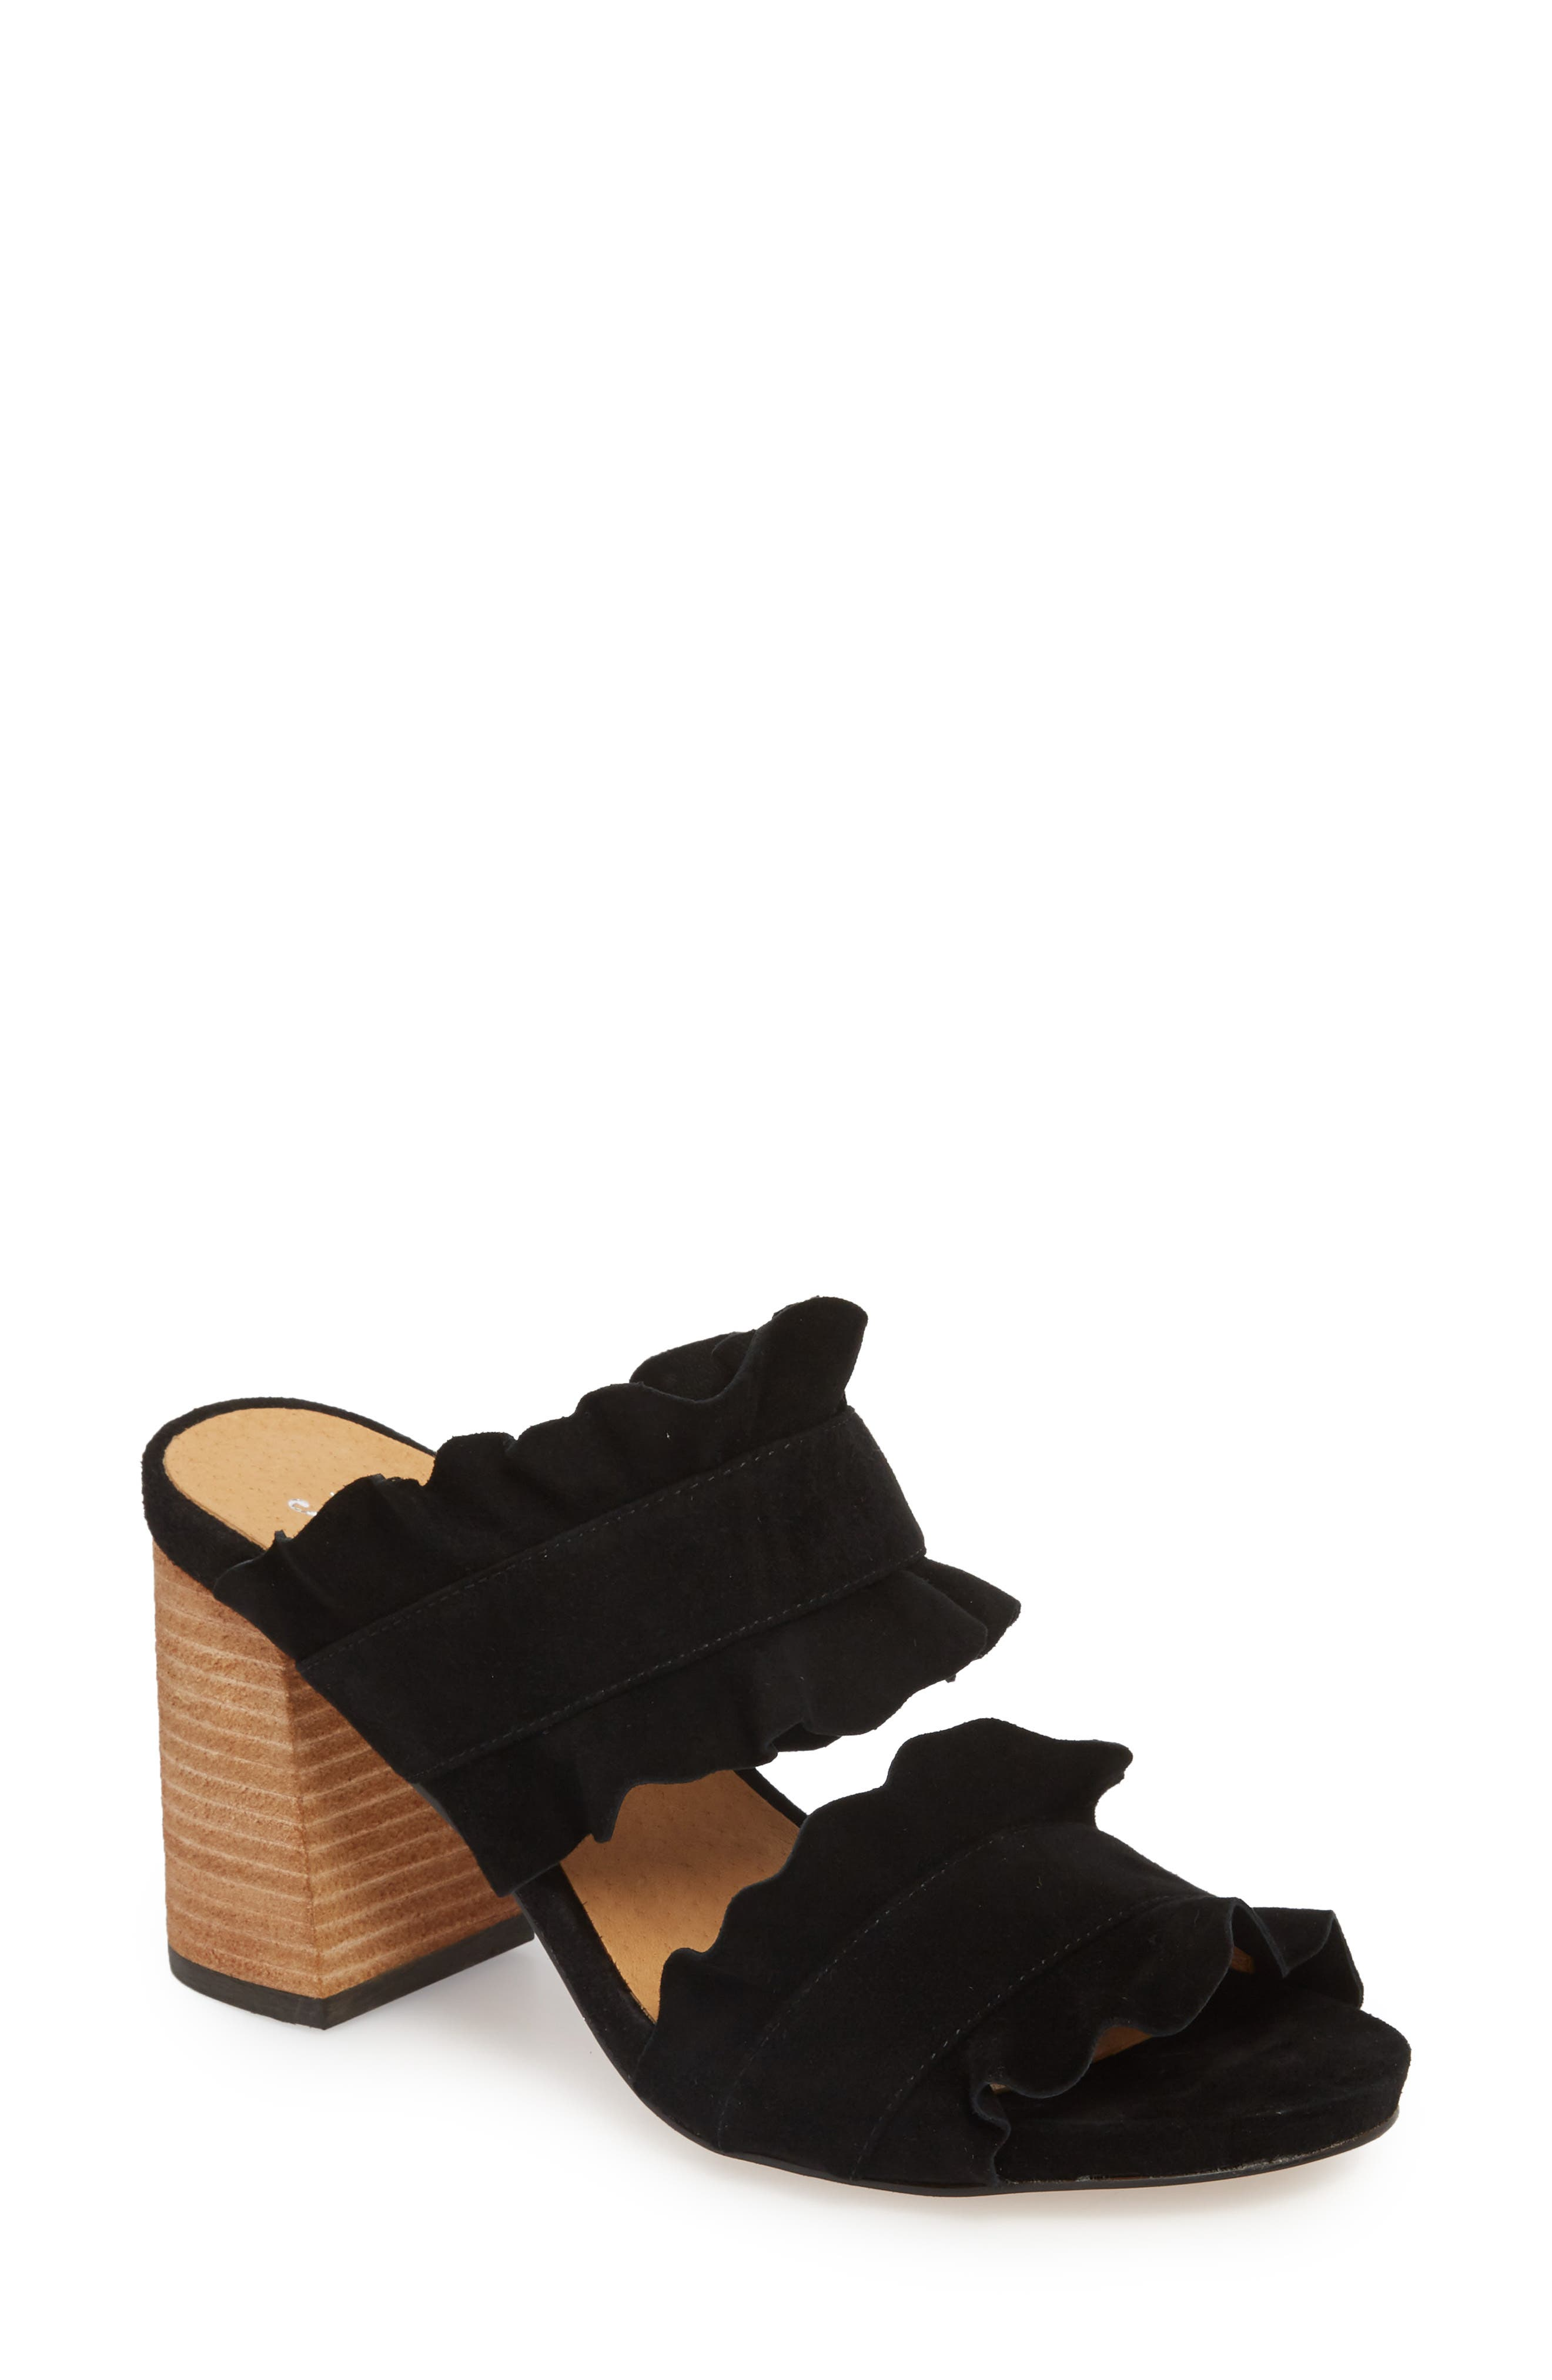 Rosie Ruffle Slide Sandal,                         Main,                         color, BLACK